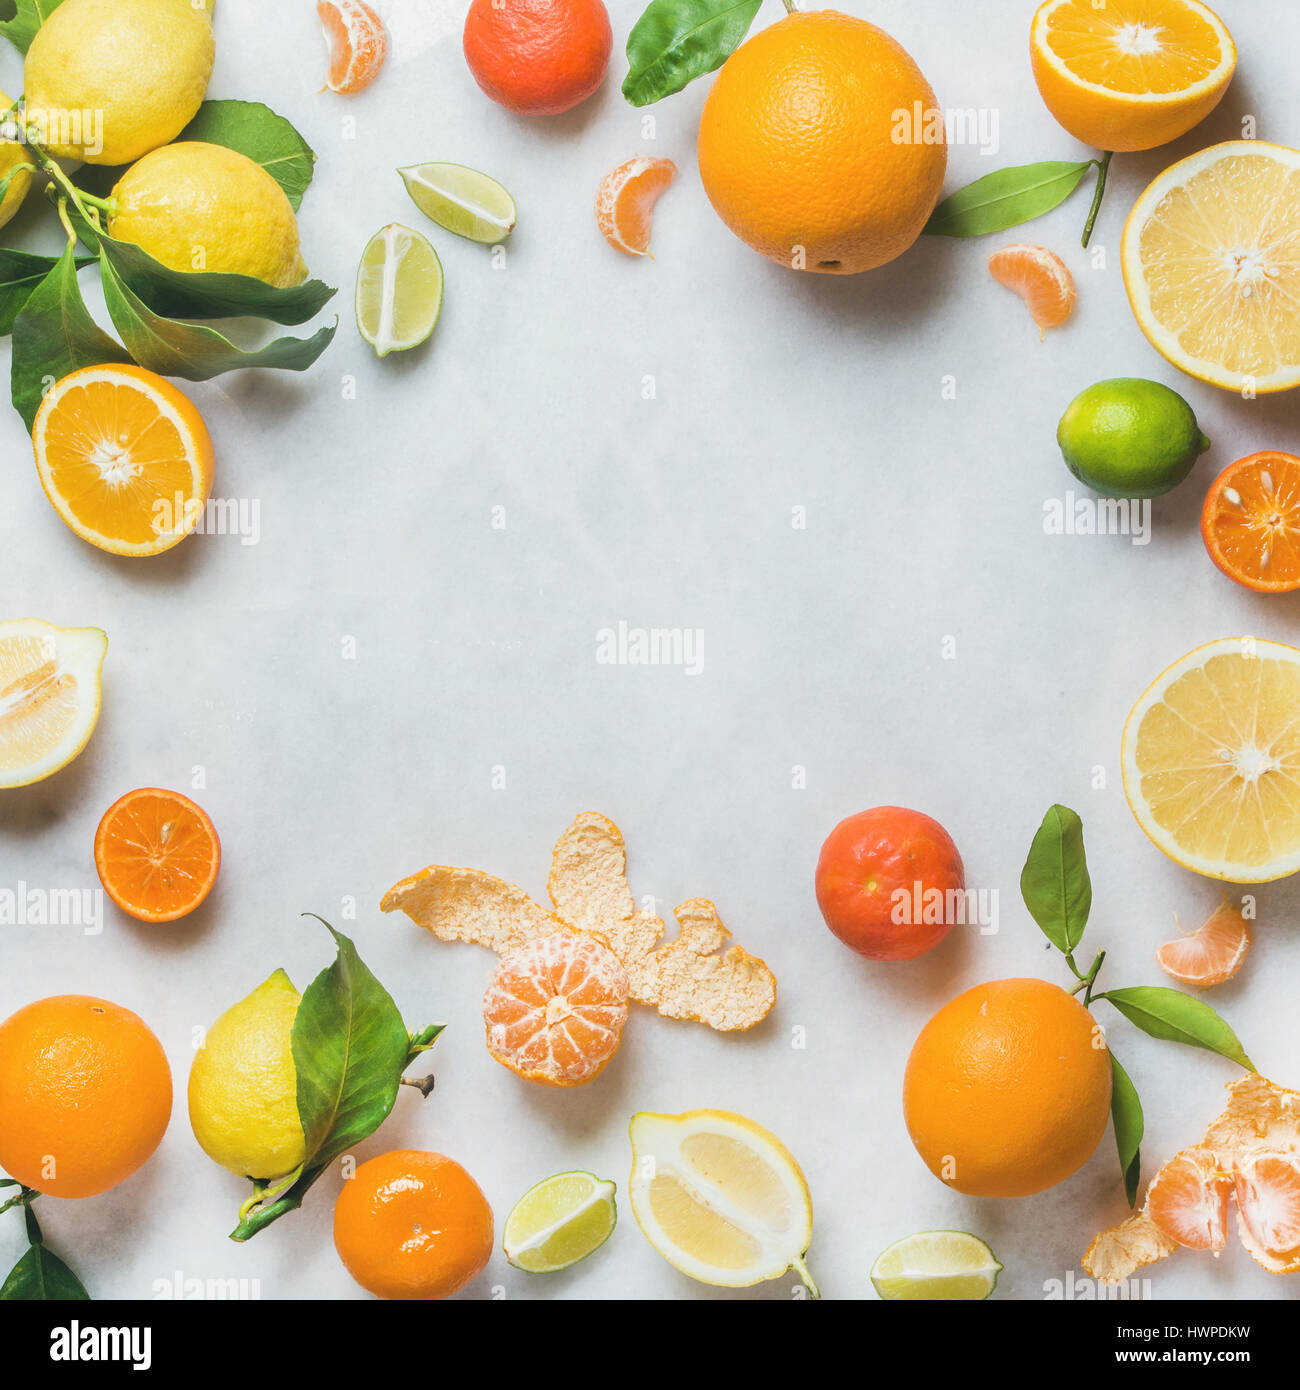 Variety of fresh citrus fruit for making juice or smoothie - Stock Image